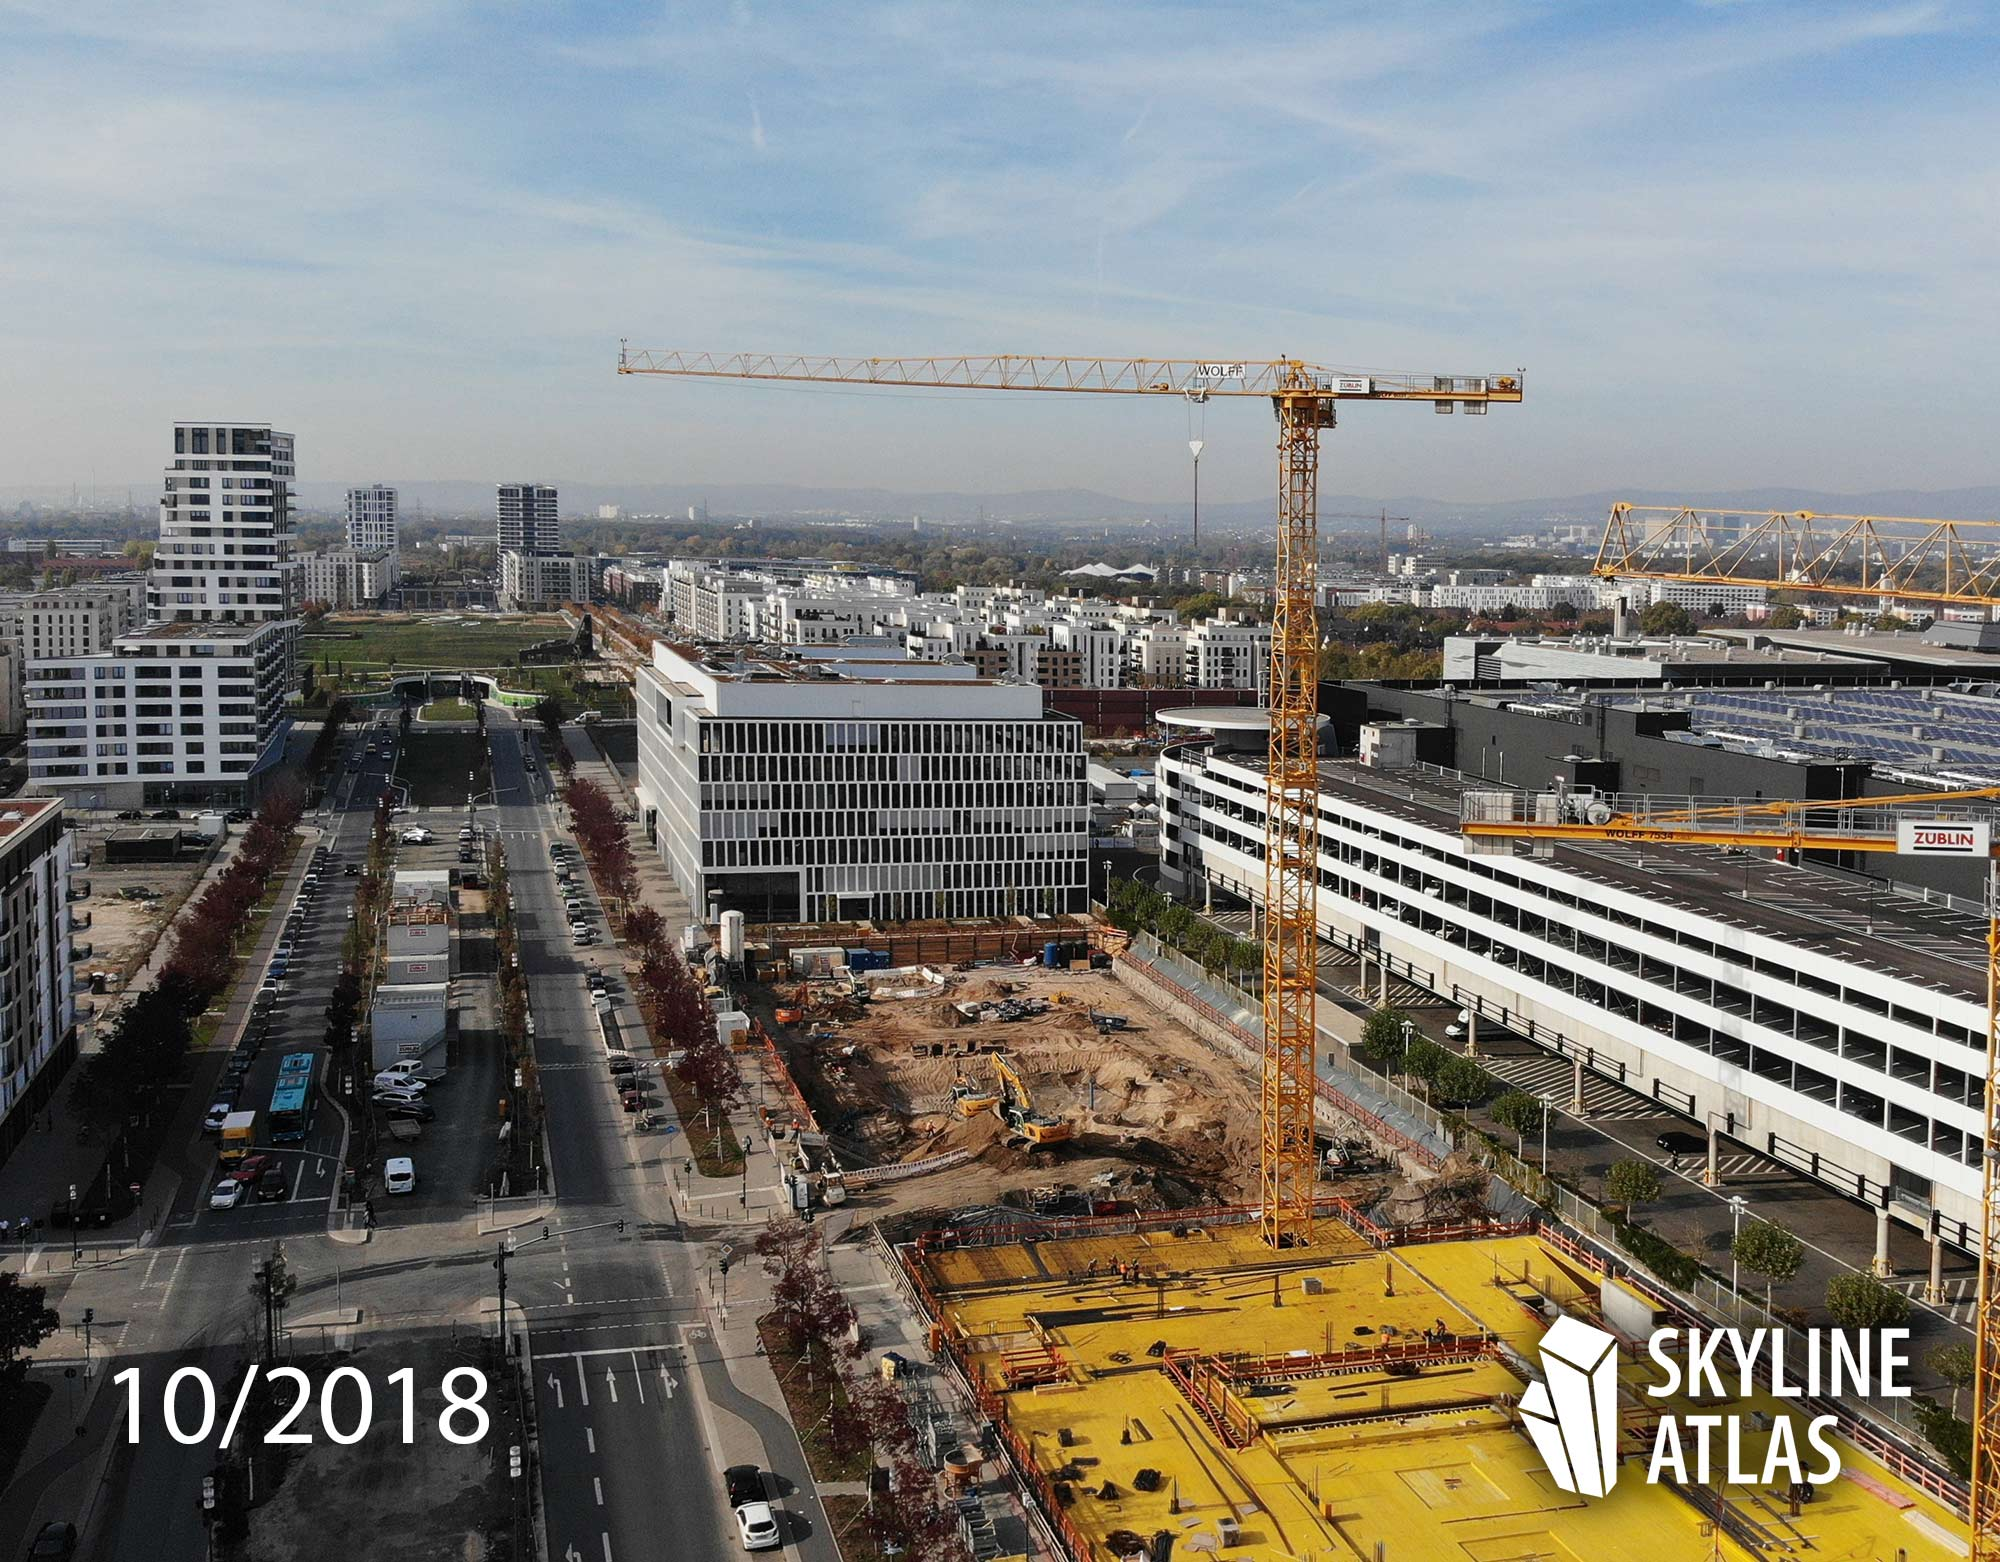 DB Tower - New high-rise building of Deutsche Bahn - Europaallee, Frankfurt, Germany - construction site in October 2018